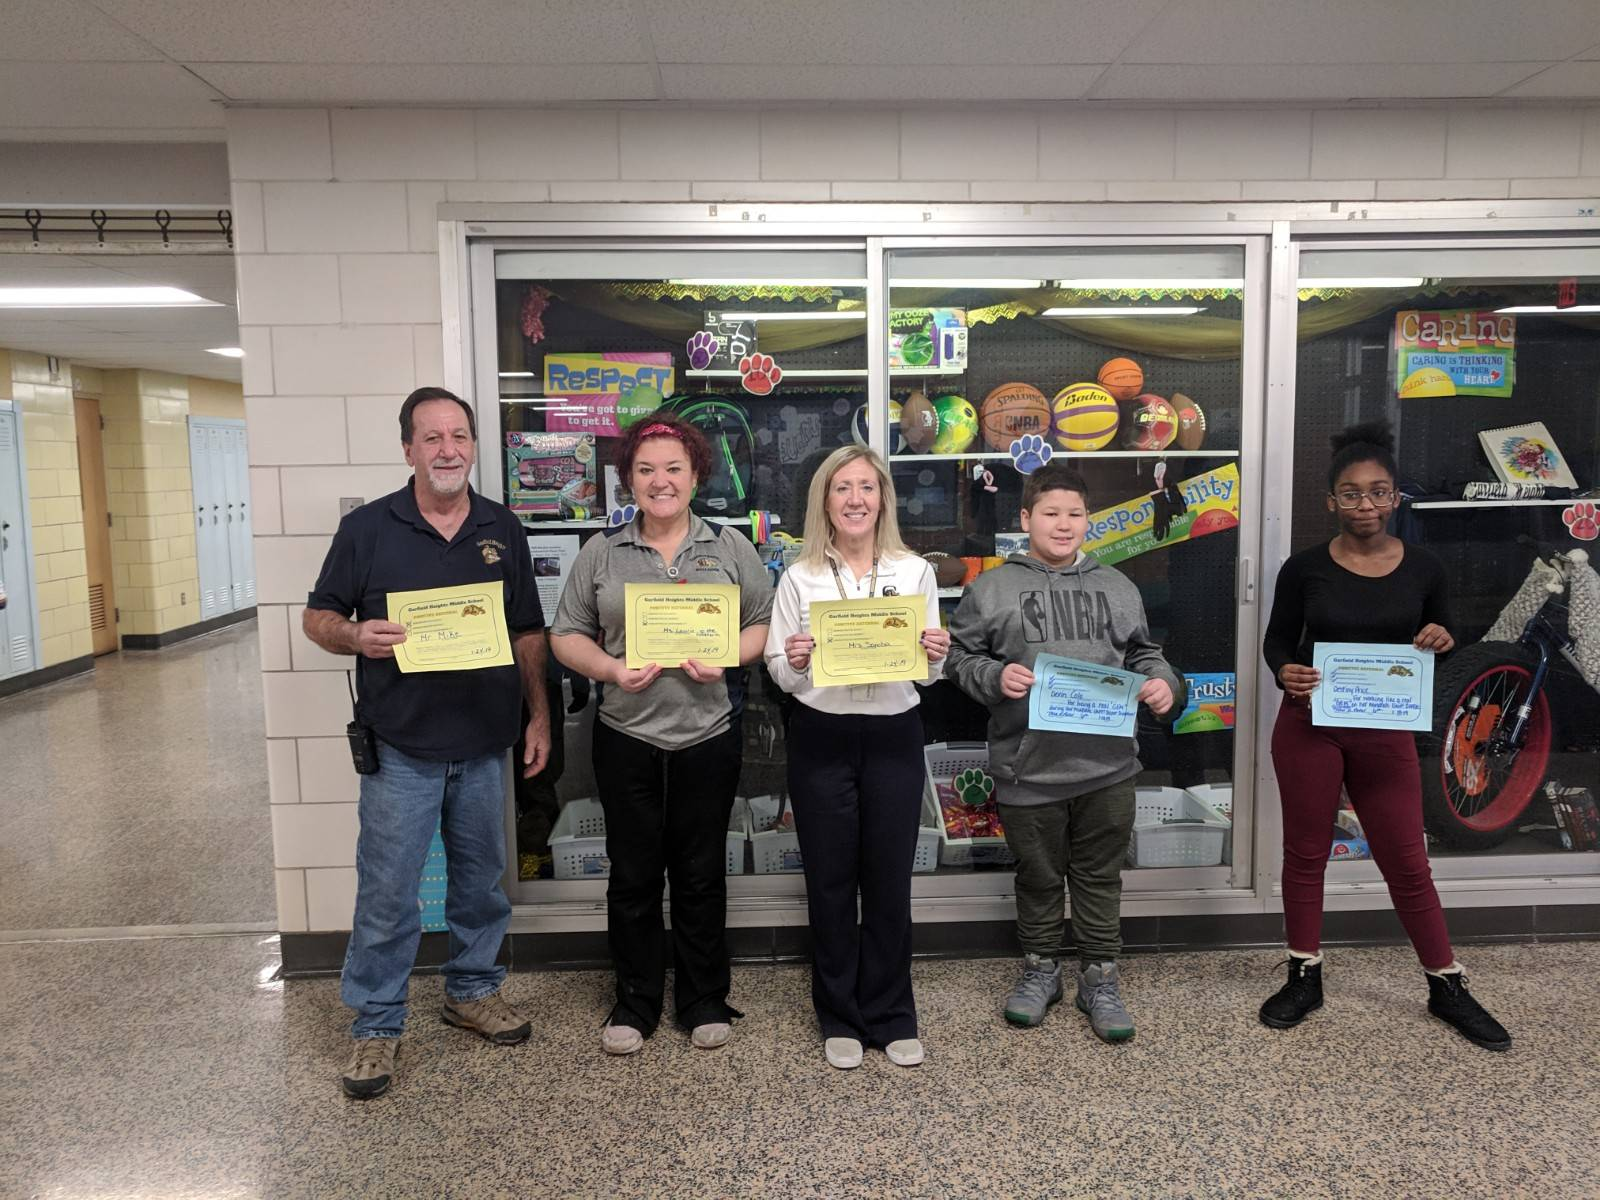 Students and staff members with positive referral certificates